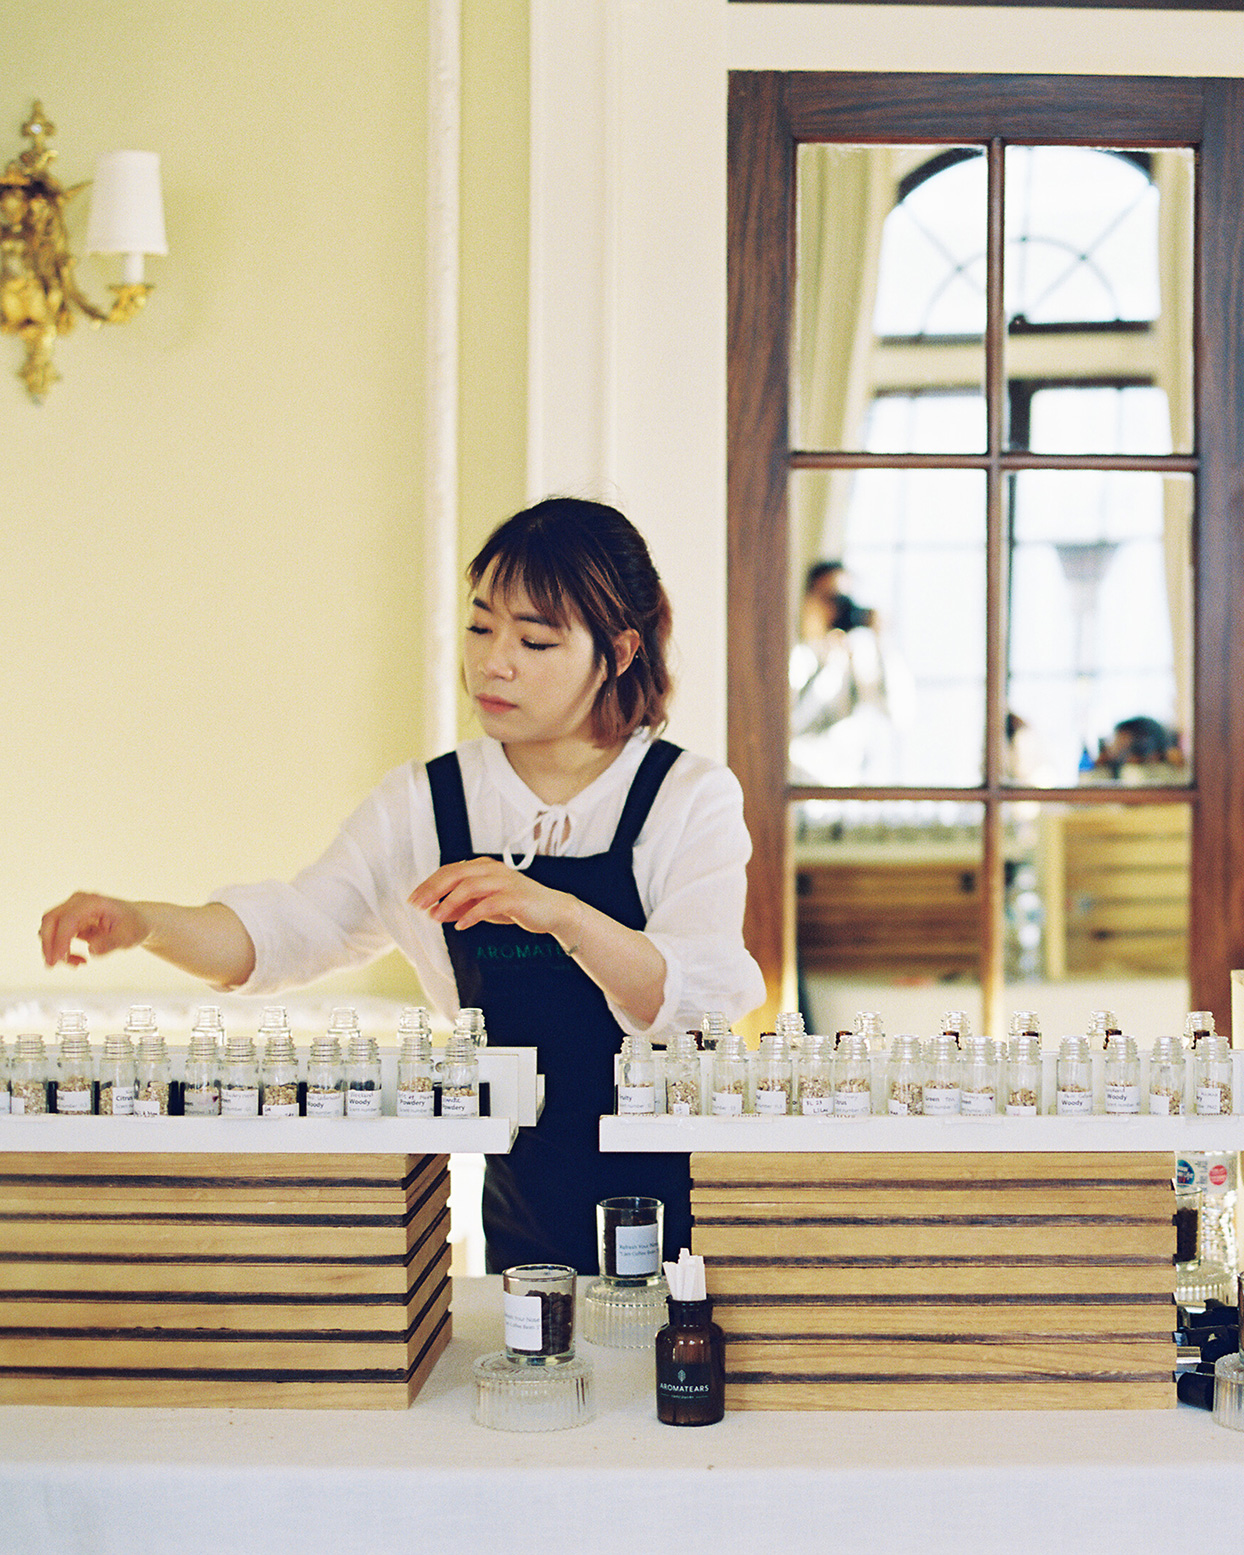 jackie ben wedding woman standing at perfume bar